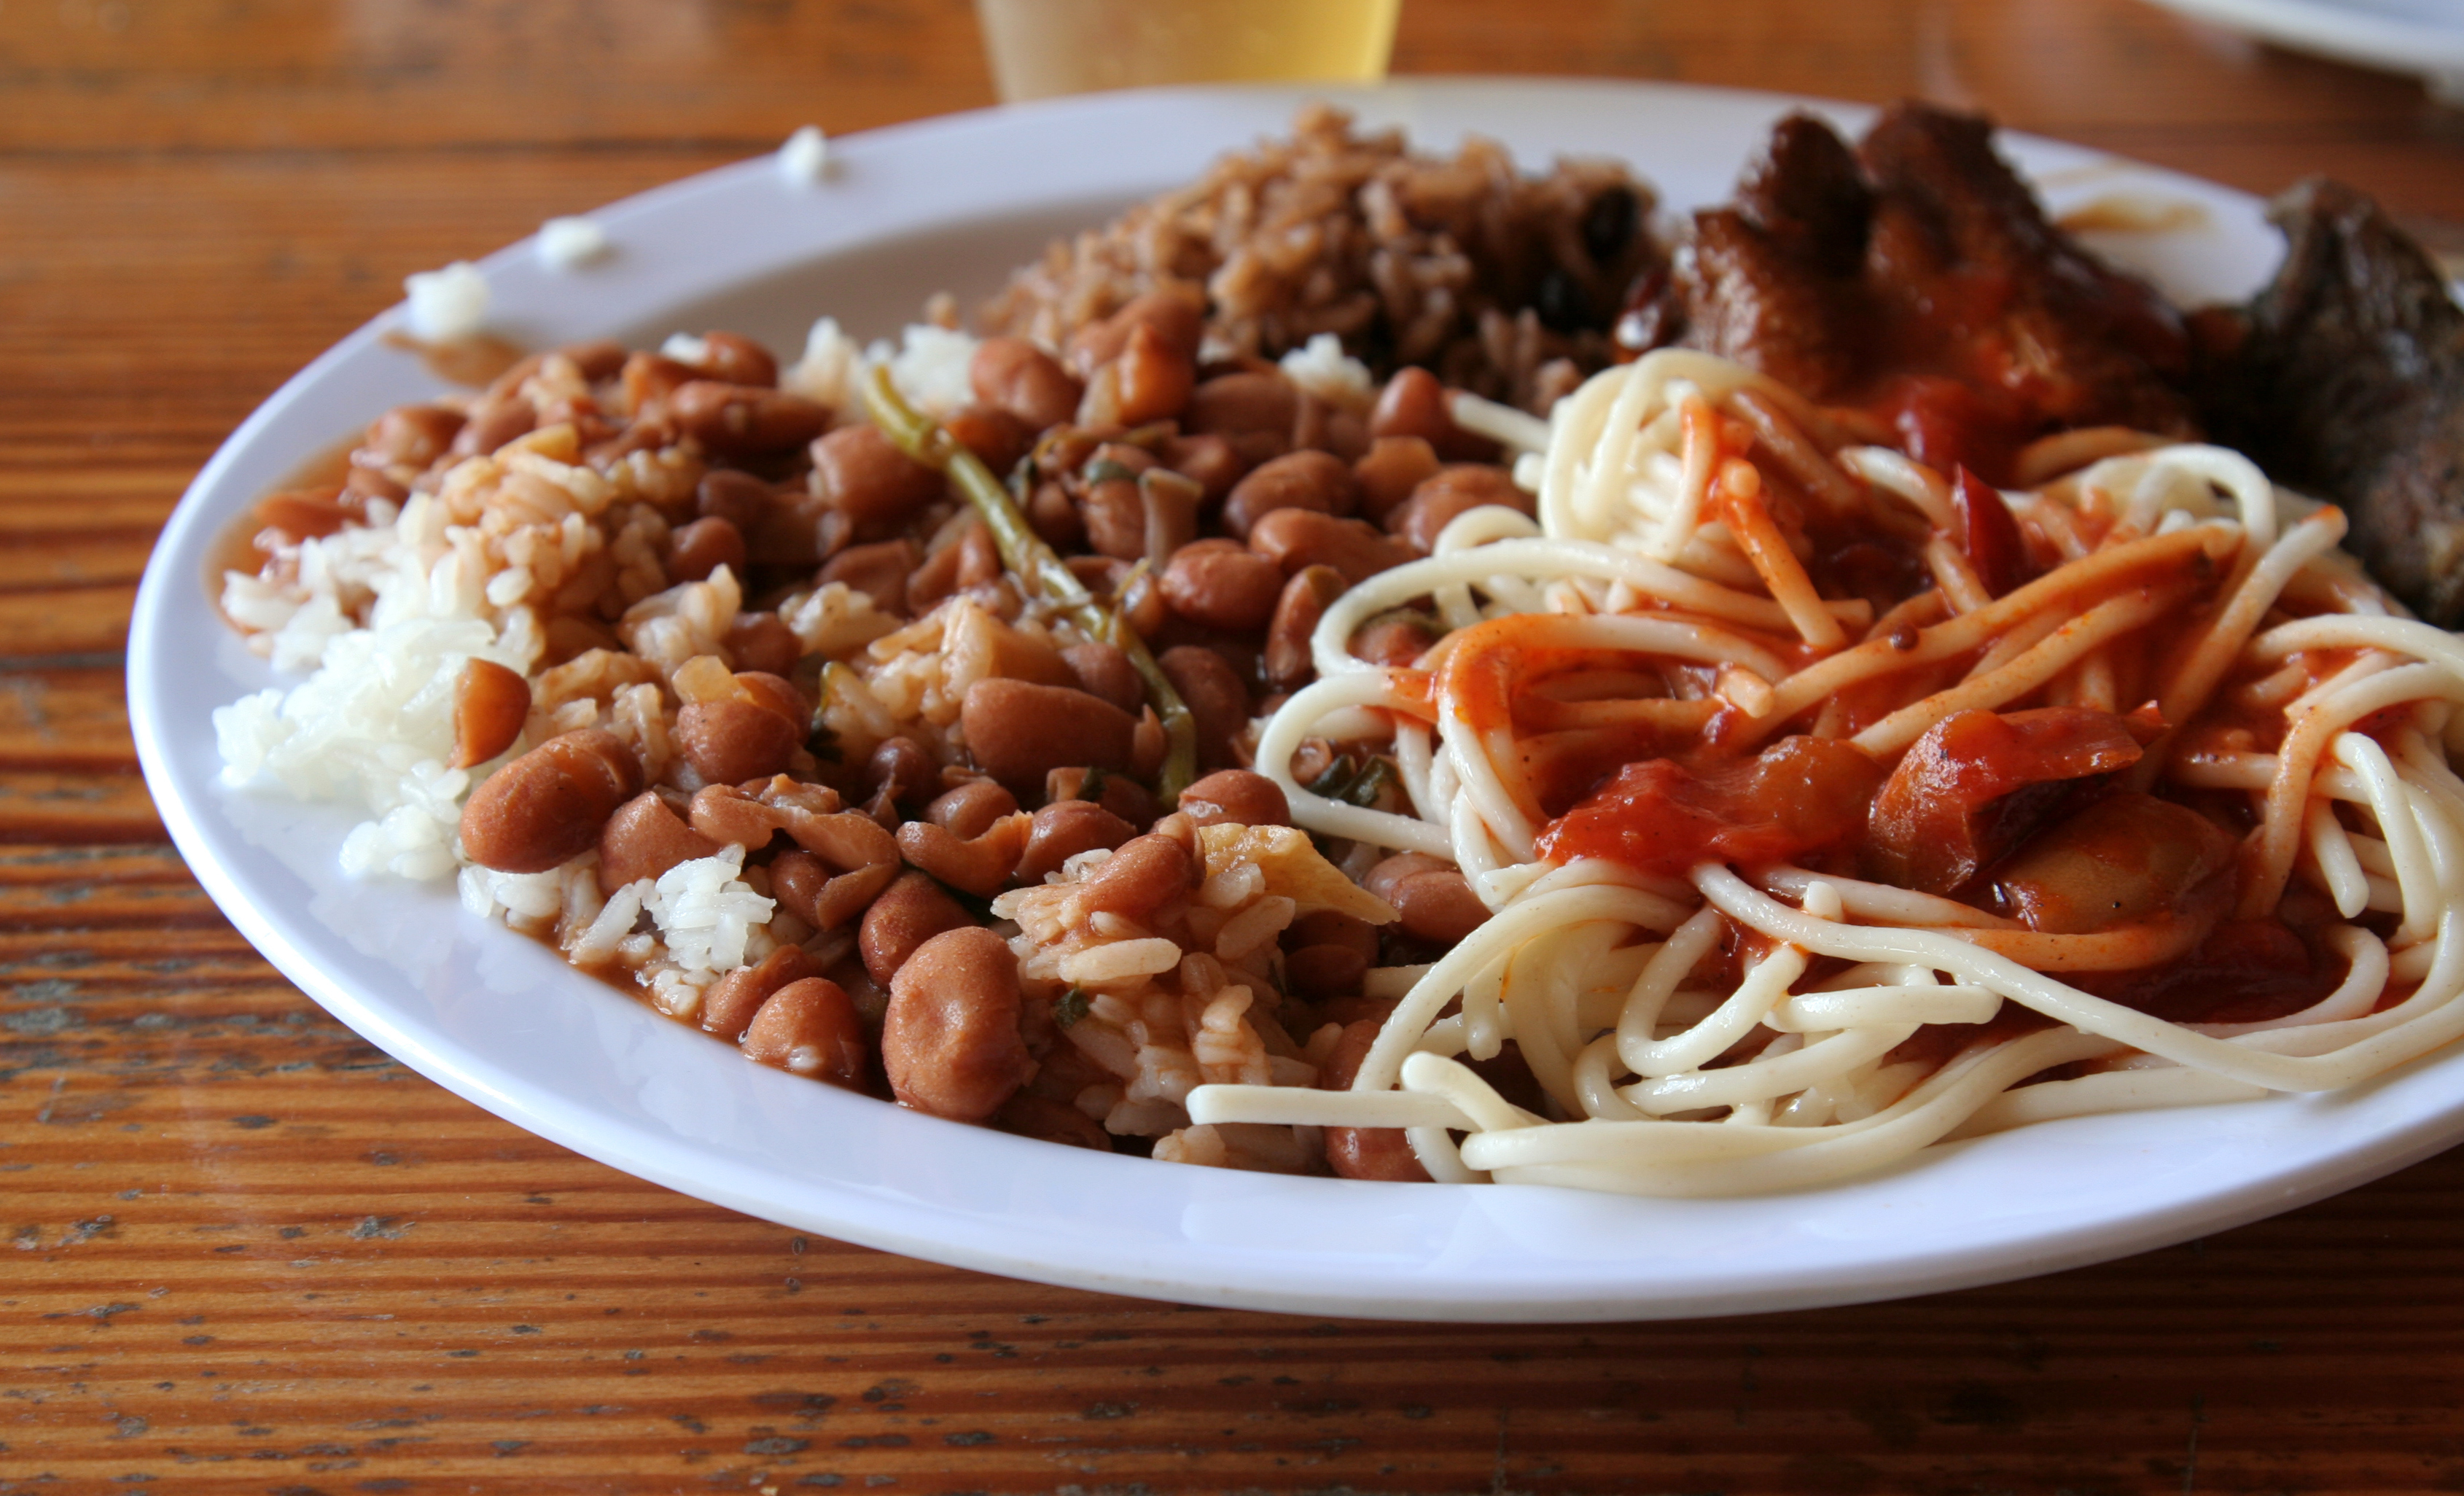 A lunch from the Dominican Republic featuring, beans, rice,spaghetti,chicken and beer. (cervasa)